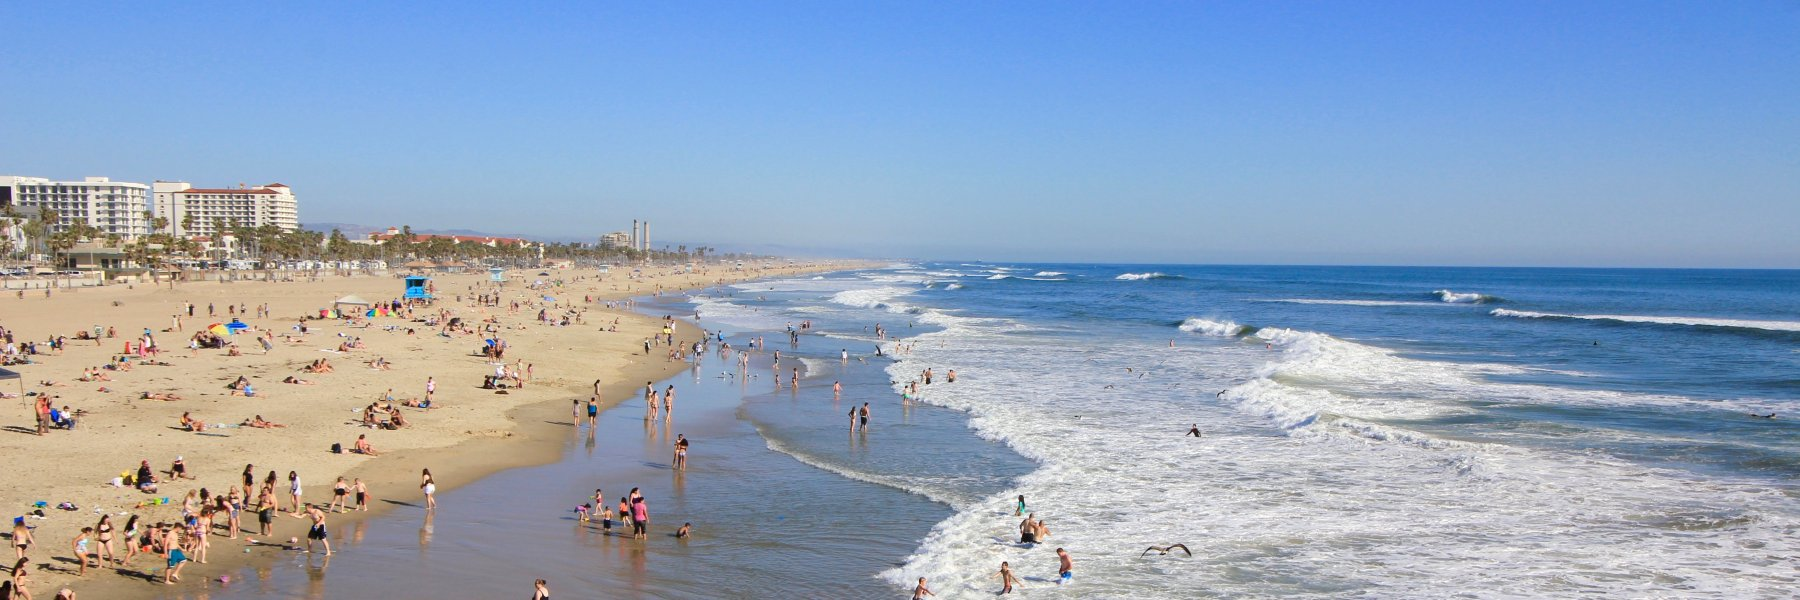 Downtown Huntington Beach is a community of homes in Huntington Beach California